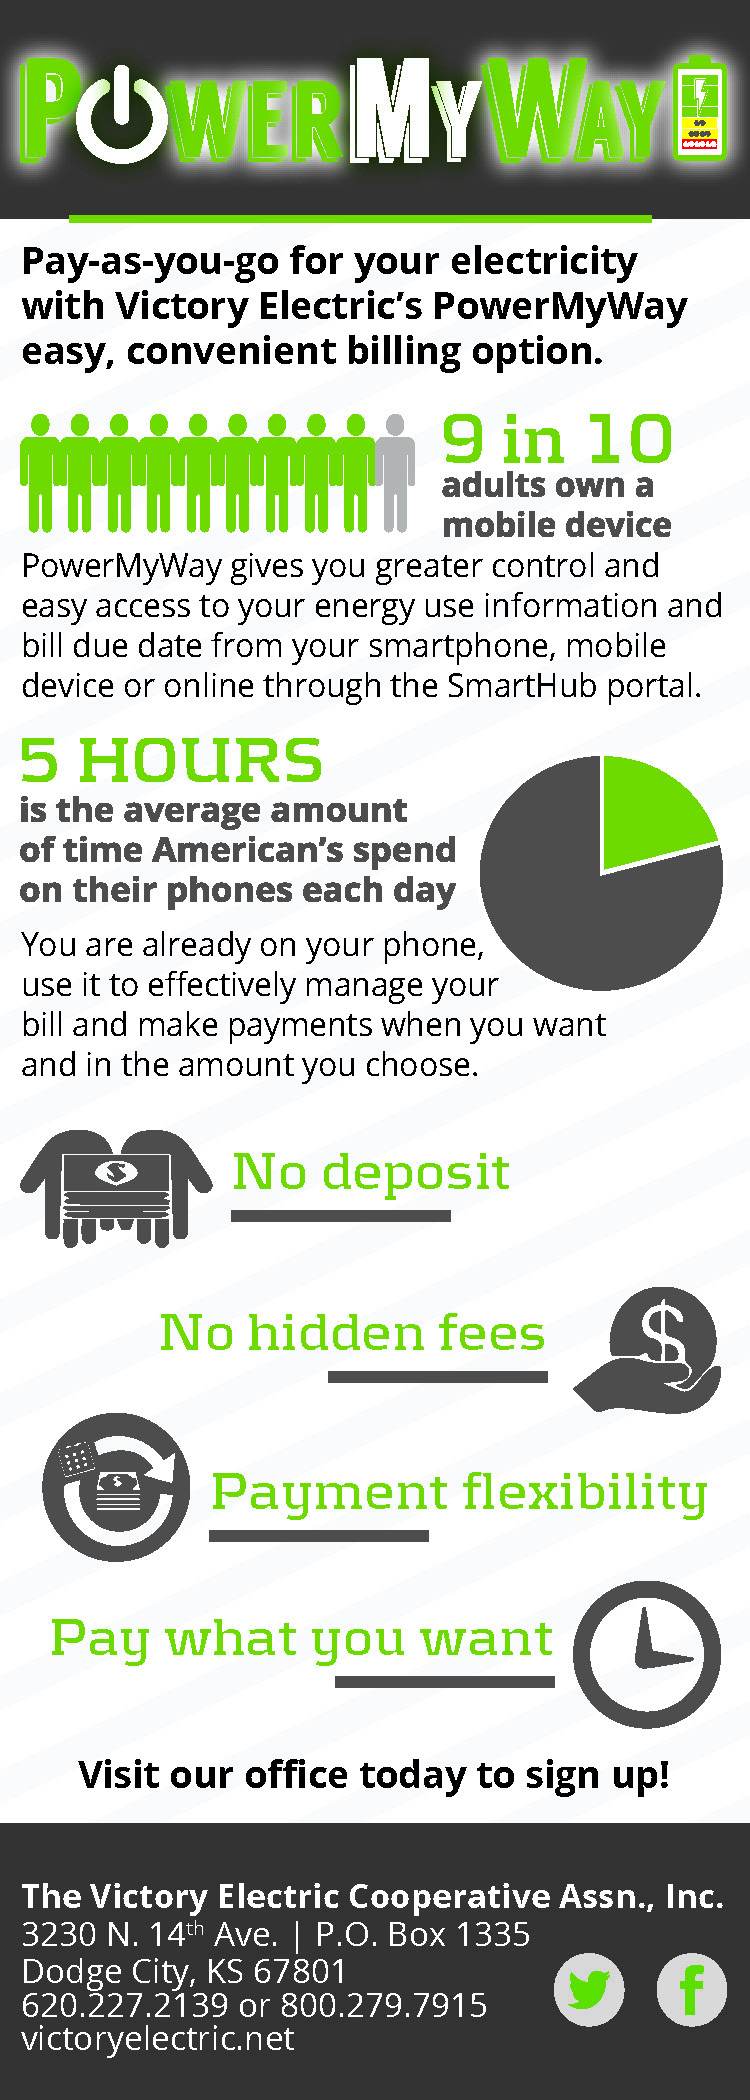 PowerMyWay Mobile Infographic